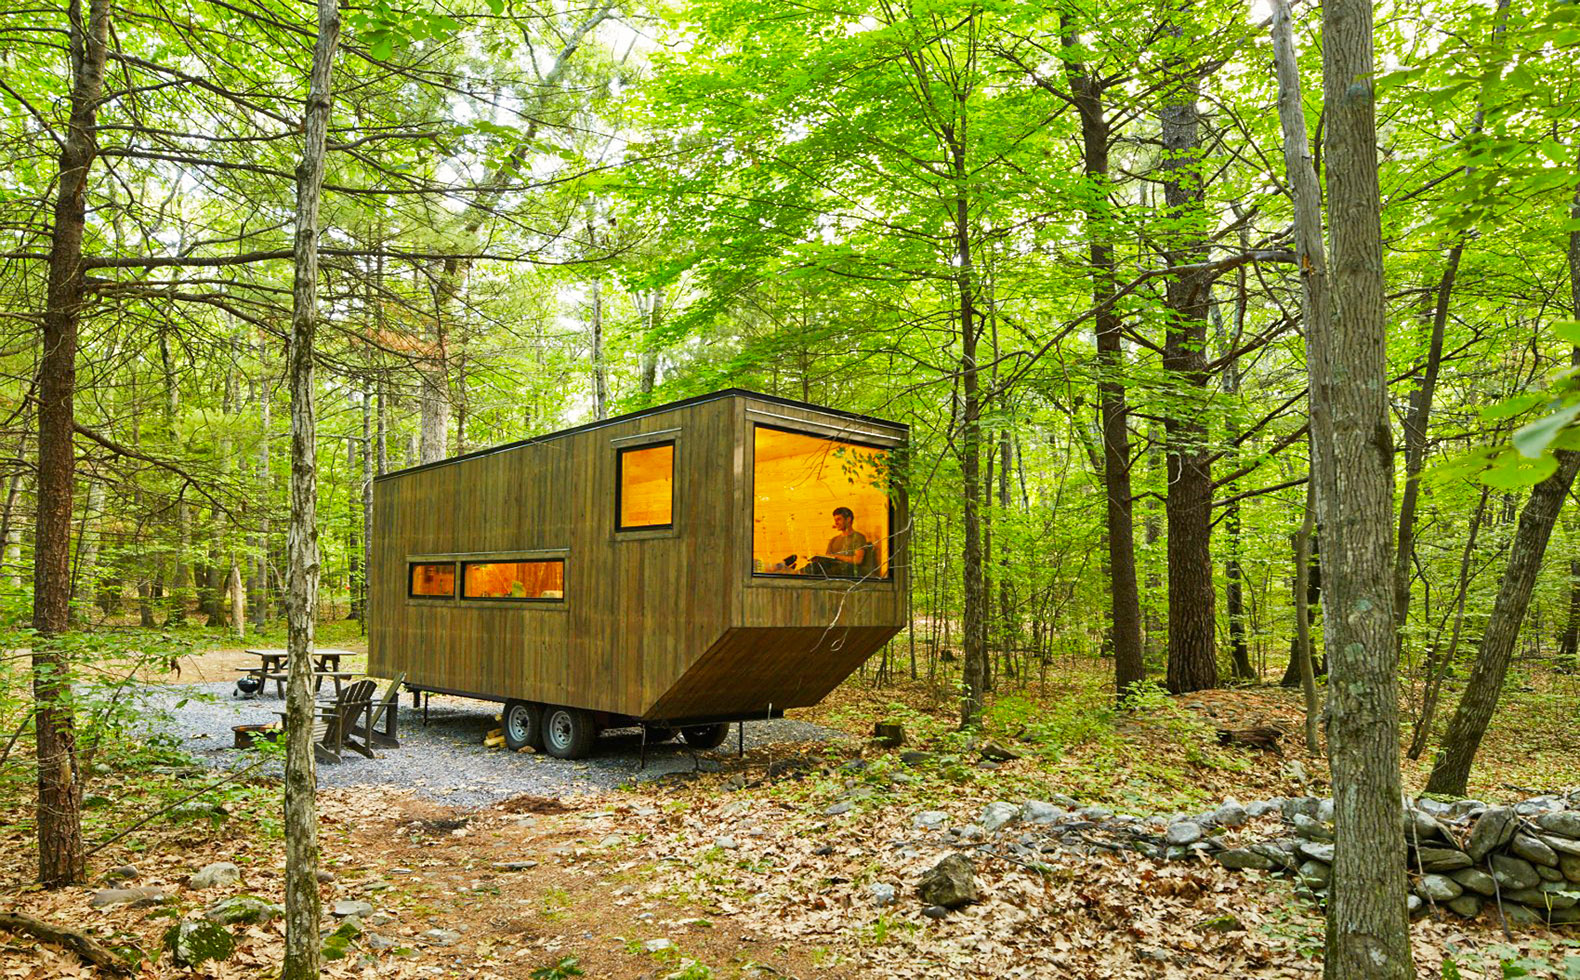 Tiny Home Designs: Tiny House Startup Getaway To Launch Off-grid Tiny Homes